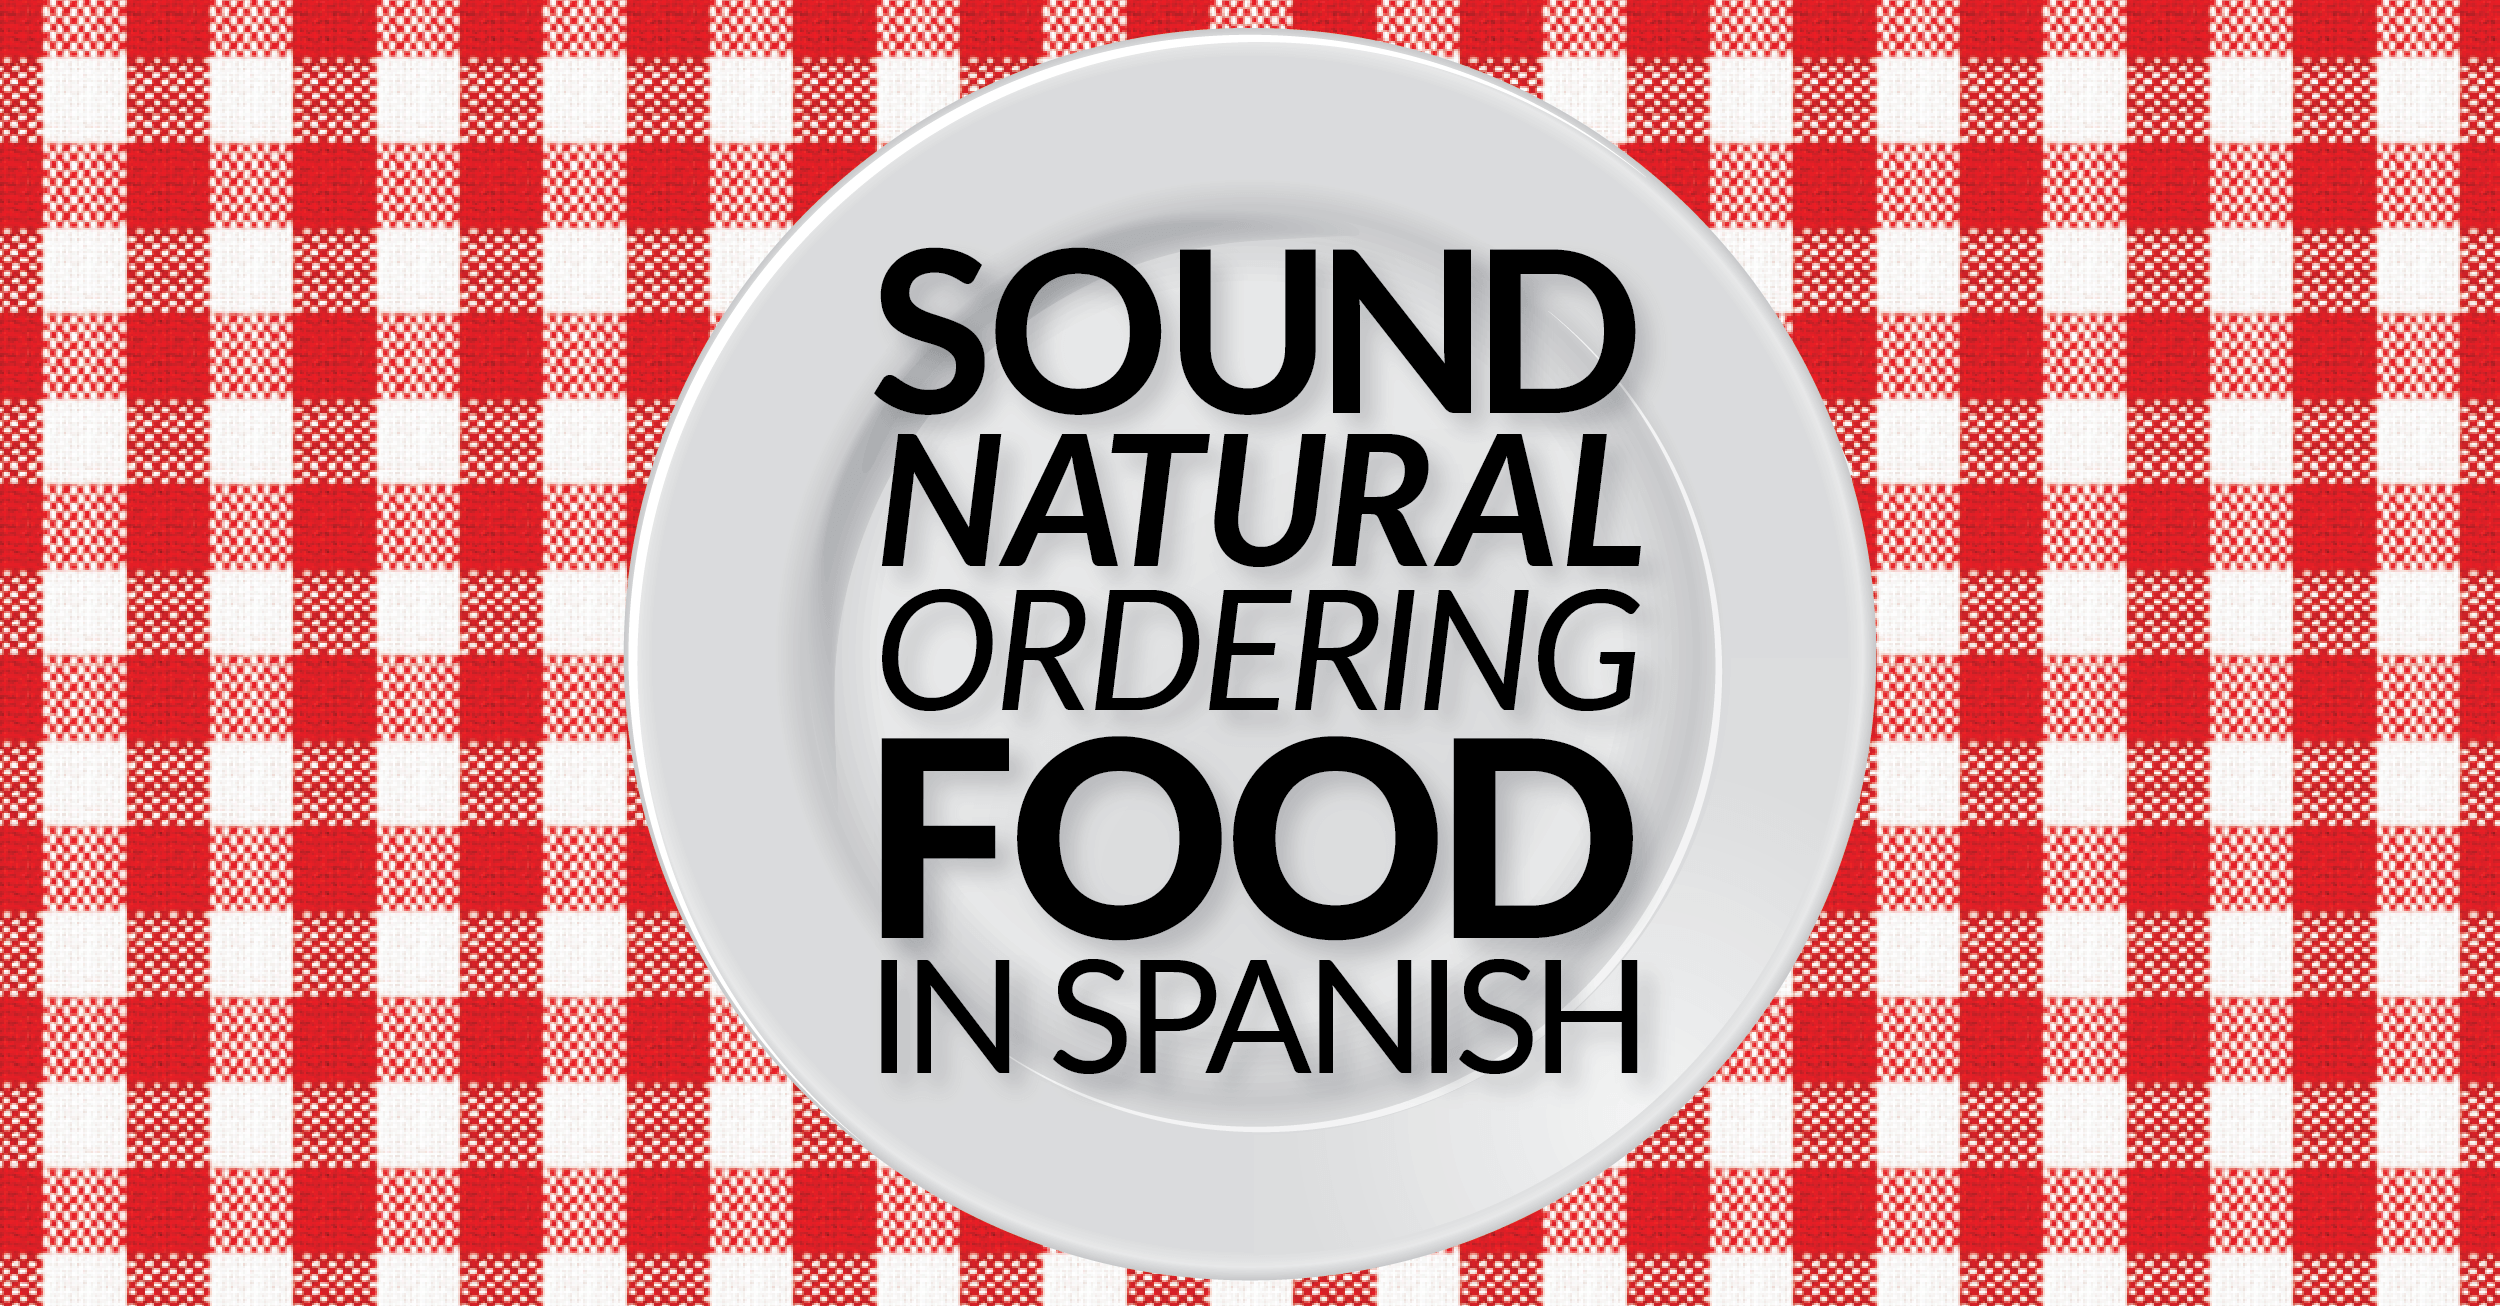 How To Sound Natural When Ordering Food In Spanish With